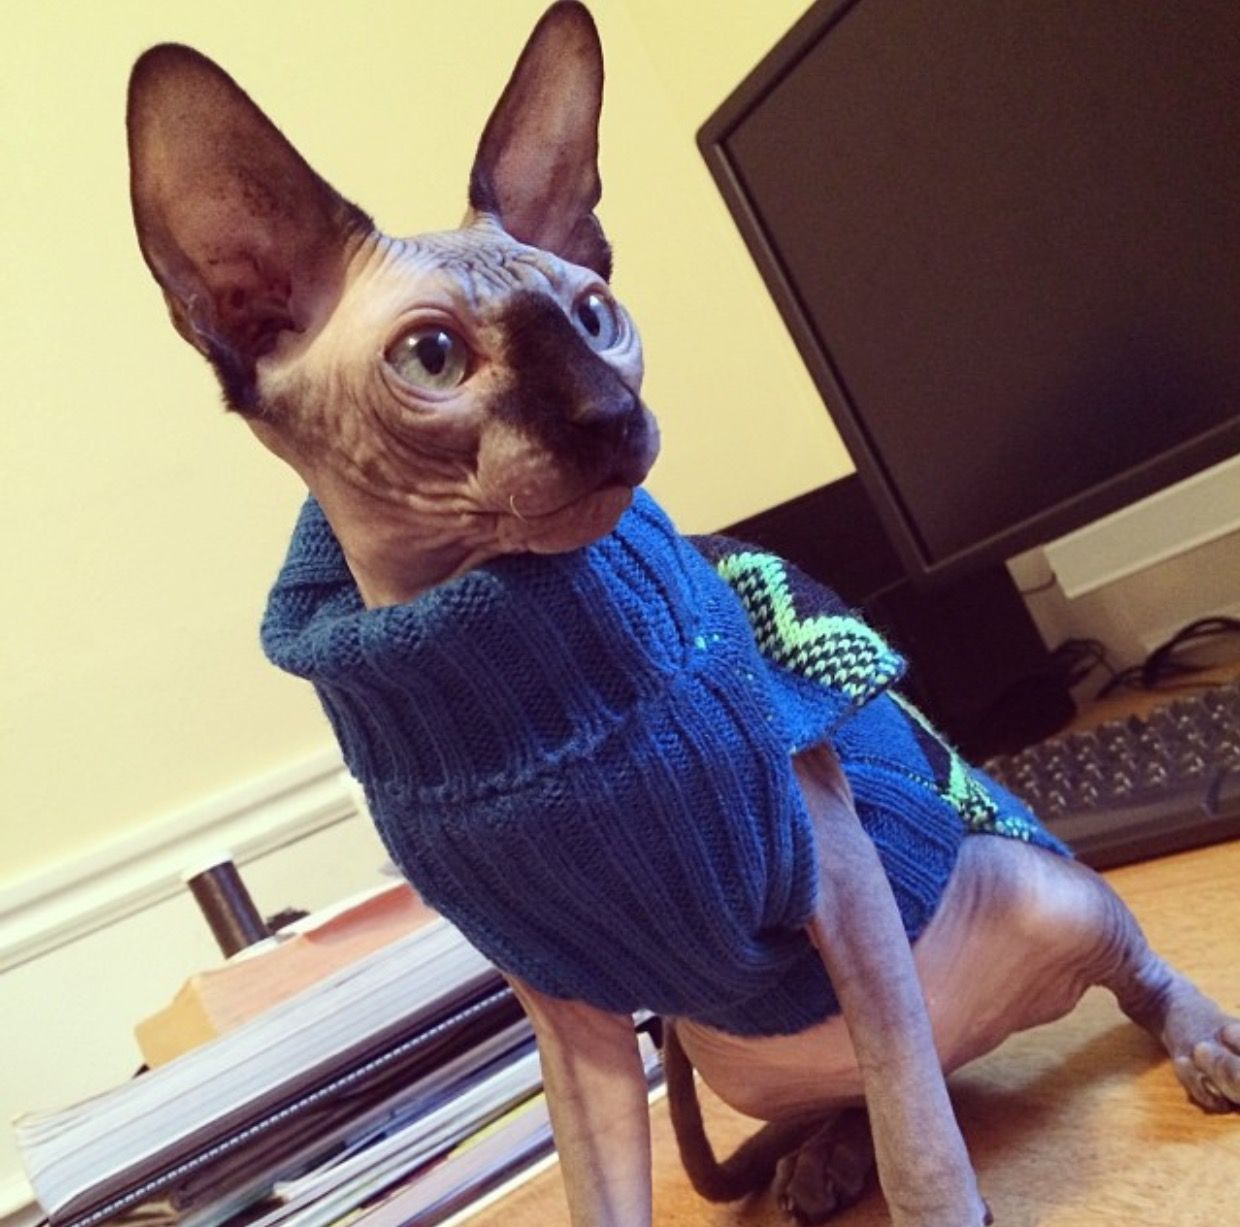 Hairless cat rockin the knitted sweater sphynx Hairless